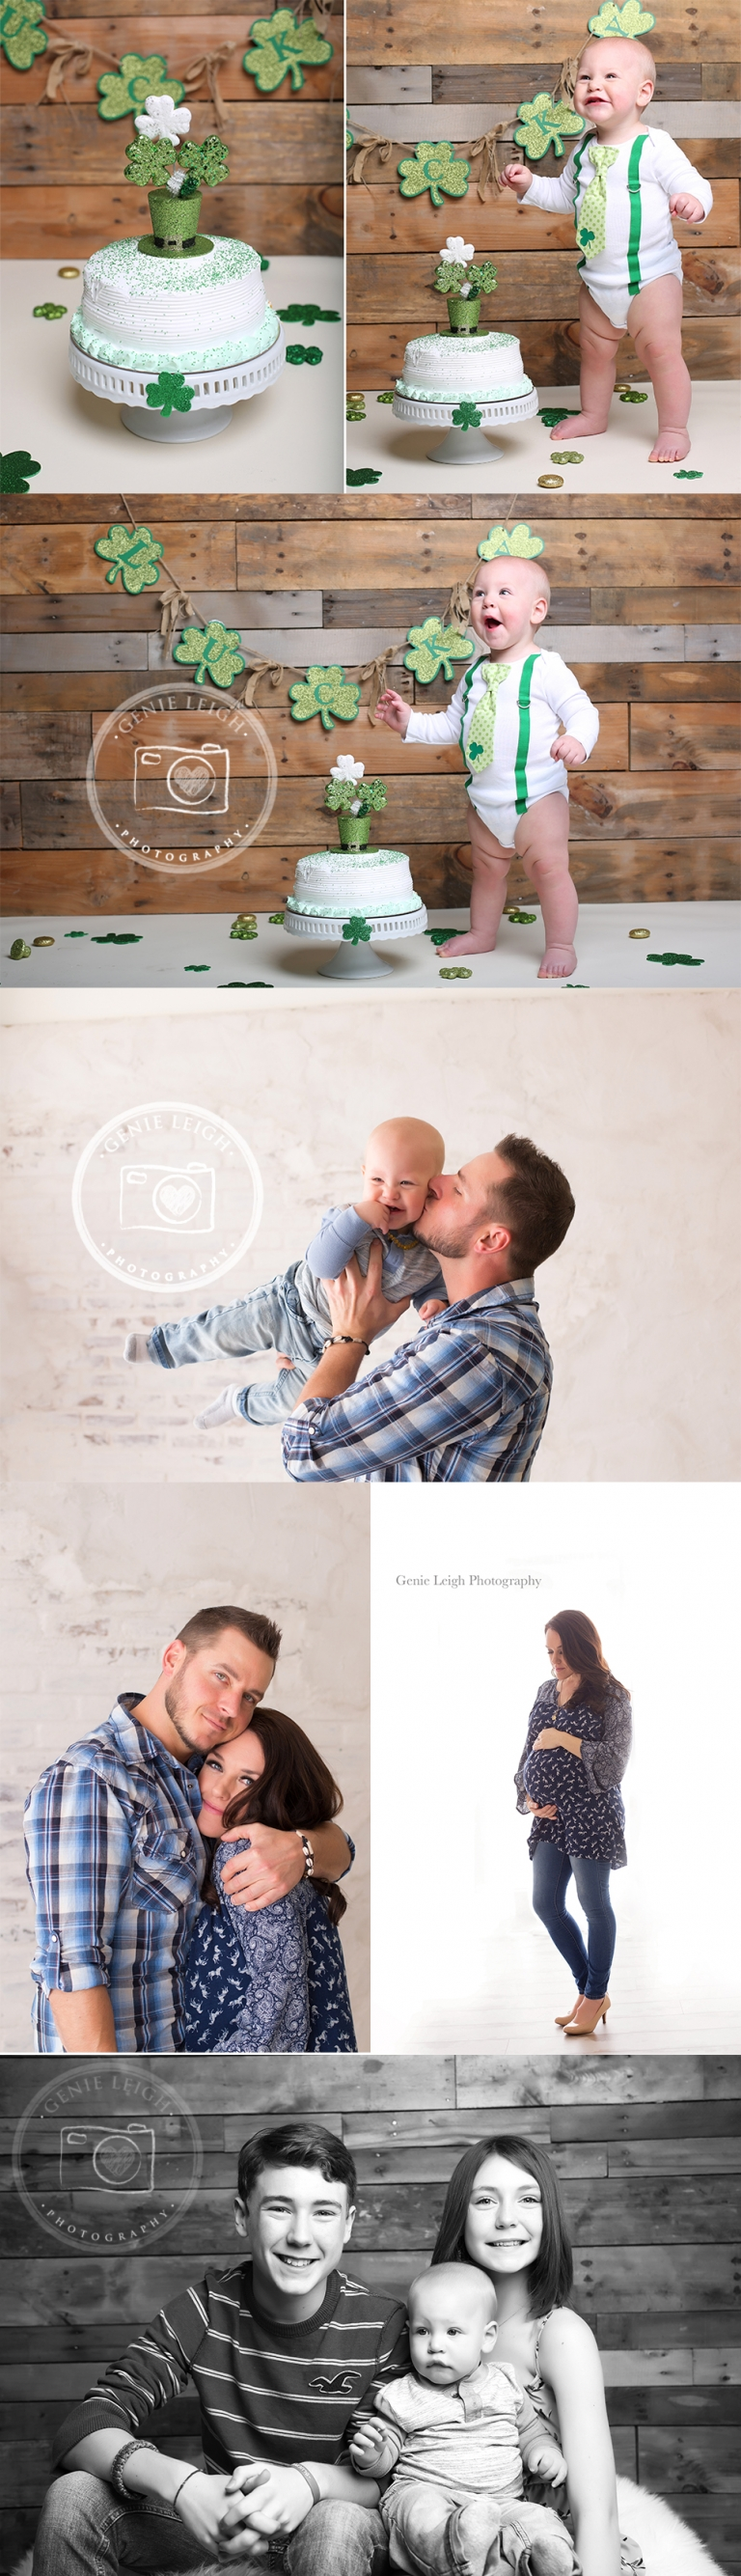 St. Patricks Day Cake Smash. Photography, Set up, Backdrop, Green, Genie Leigh Photography, Wilmington, NC, Shallotte, NC